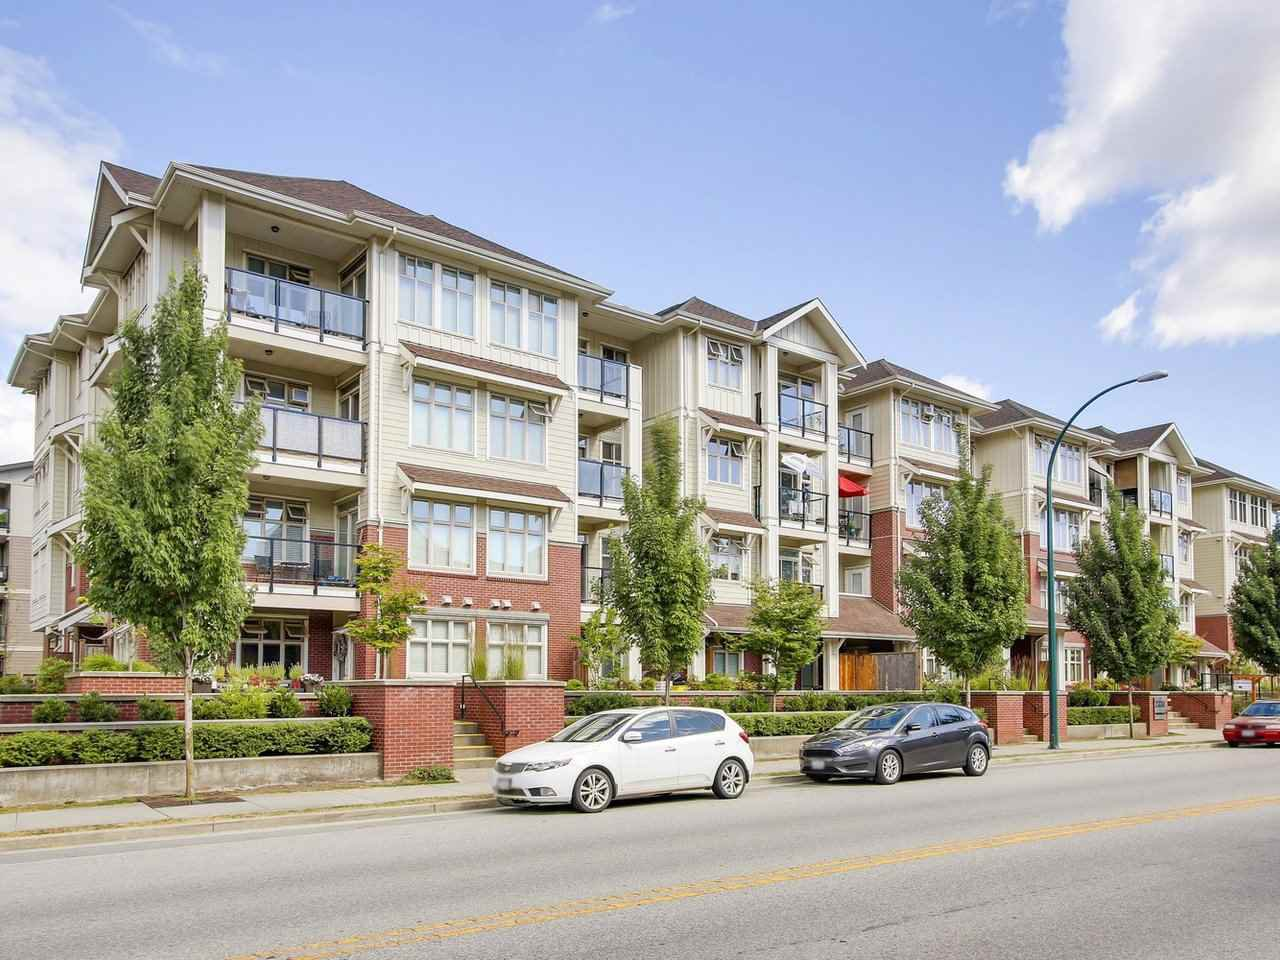 """Main Photo: 402 2330 SHAUGHNESSY Street in Port Coquitlam: Central Pt Coquitlam Condo for sale in """"AVANTI"""" : MLS®# R2446684"""